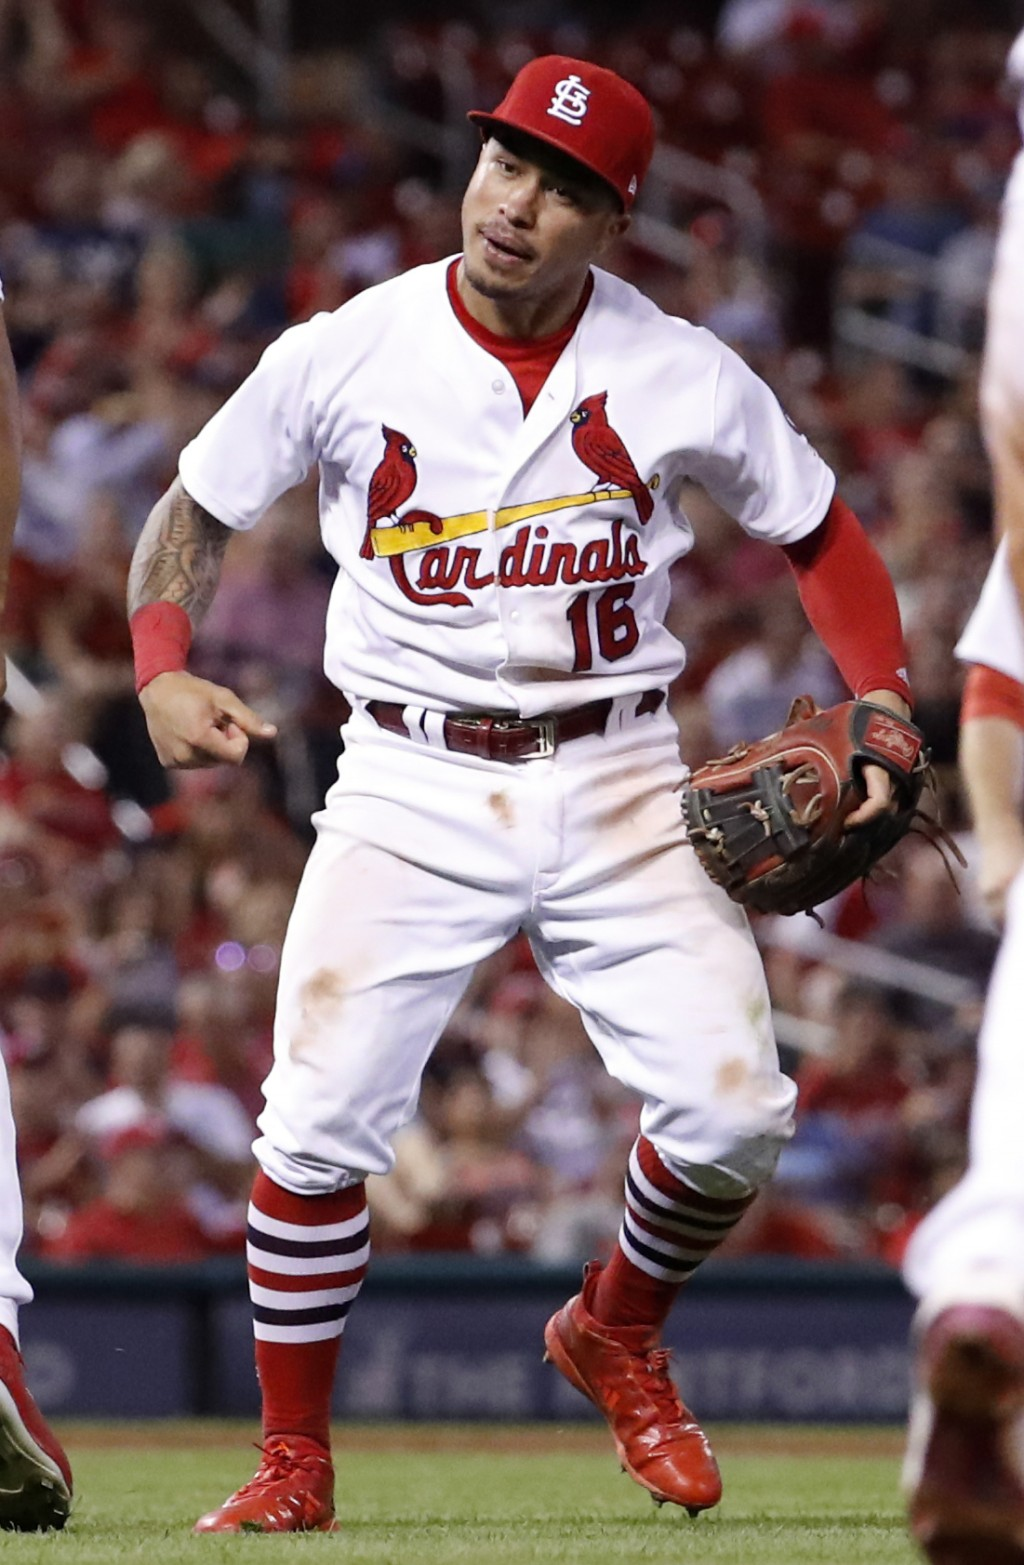 St. Louis Cardinals second baseman Kolten Wong celebrates after throwing Milwaukee Brewers' Keon Broxton out at first during the eighth inning of a ba...